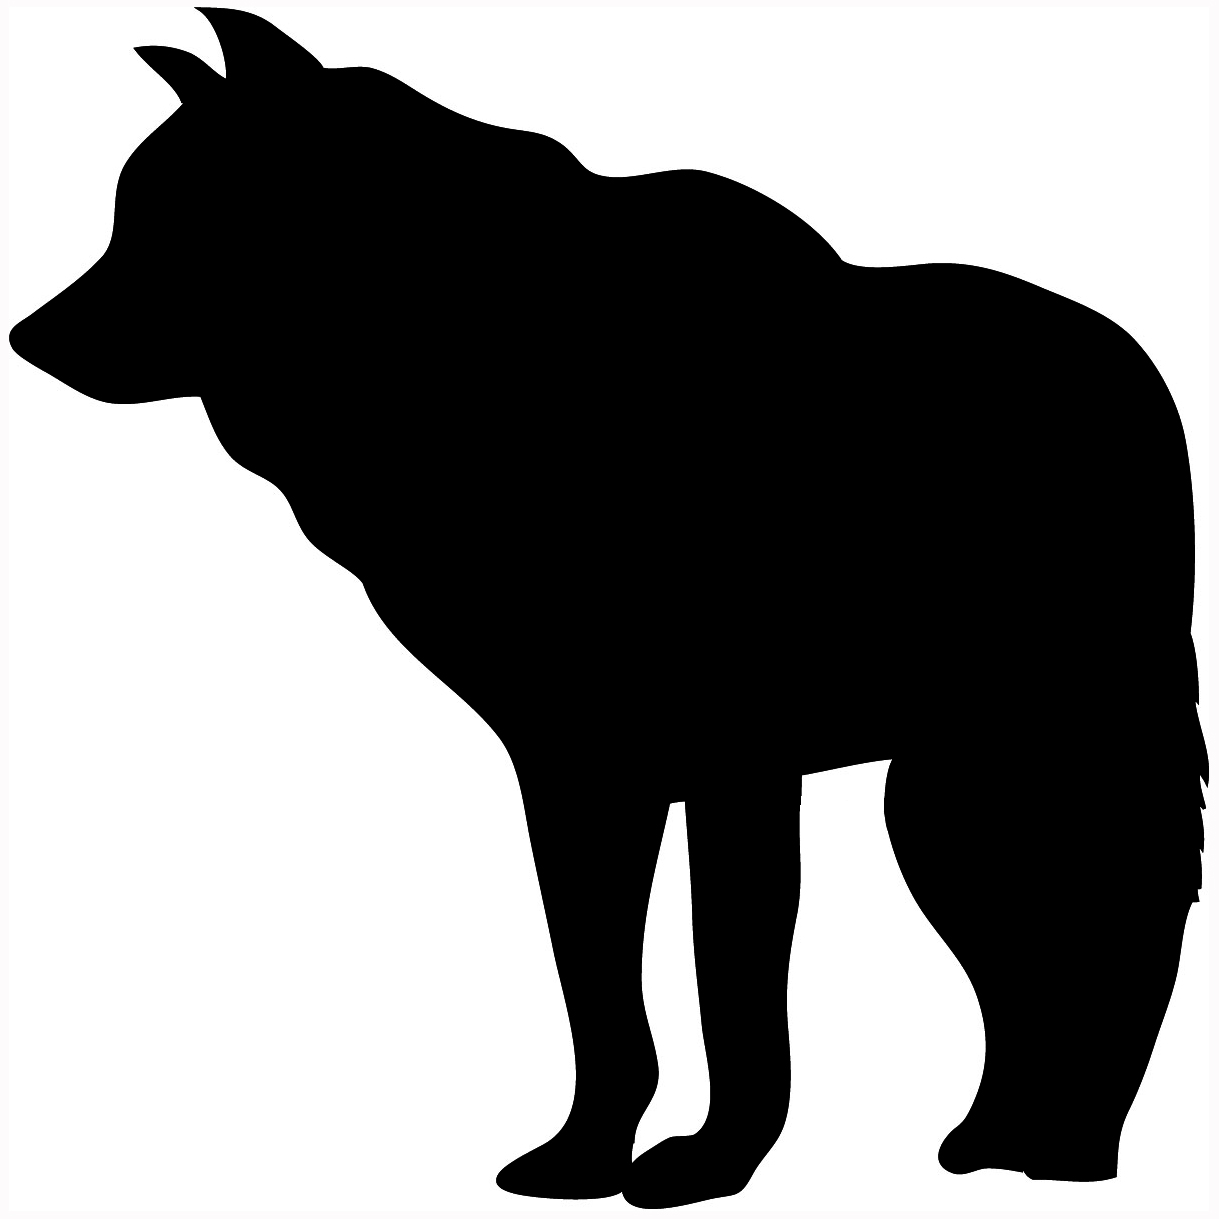 1219x1219 Howling Wolf Silhouette Clipart